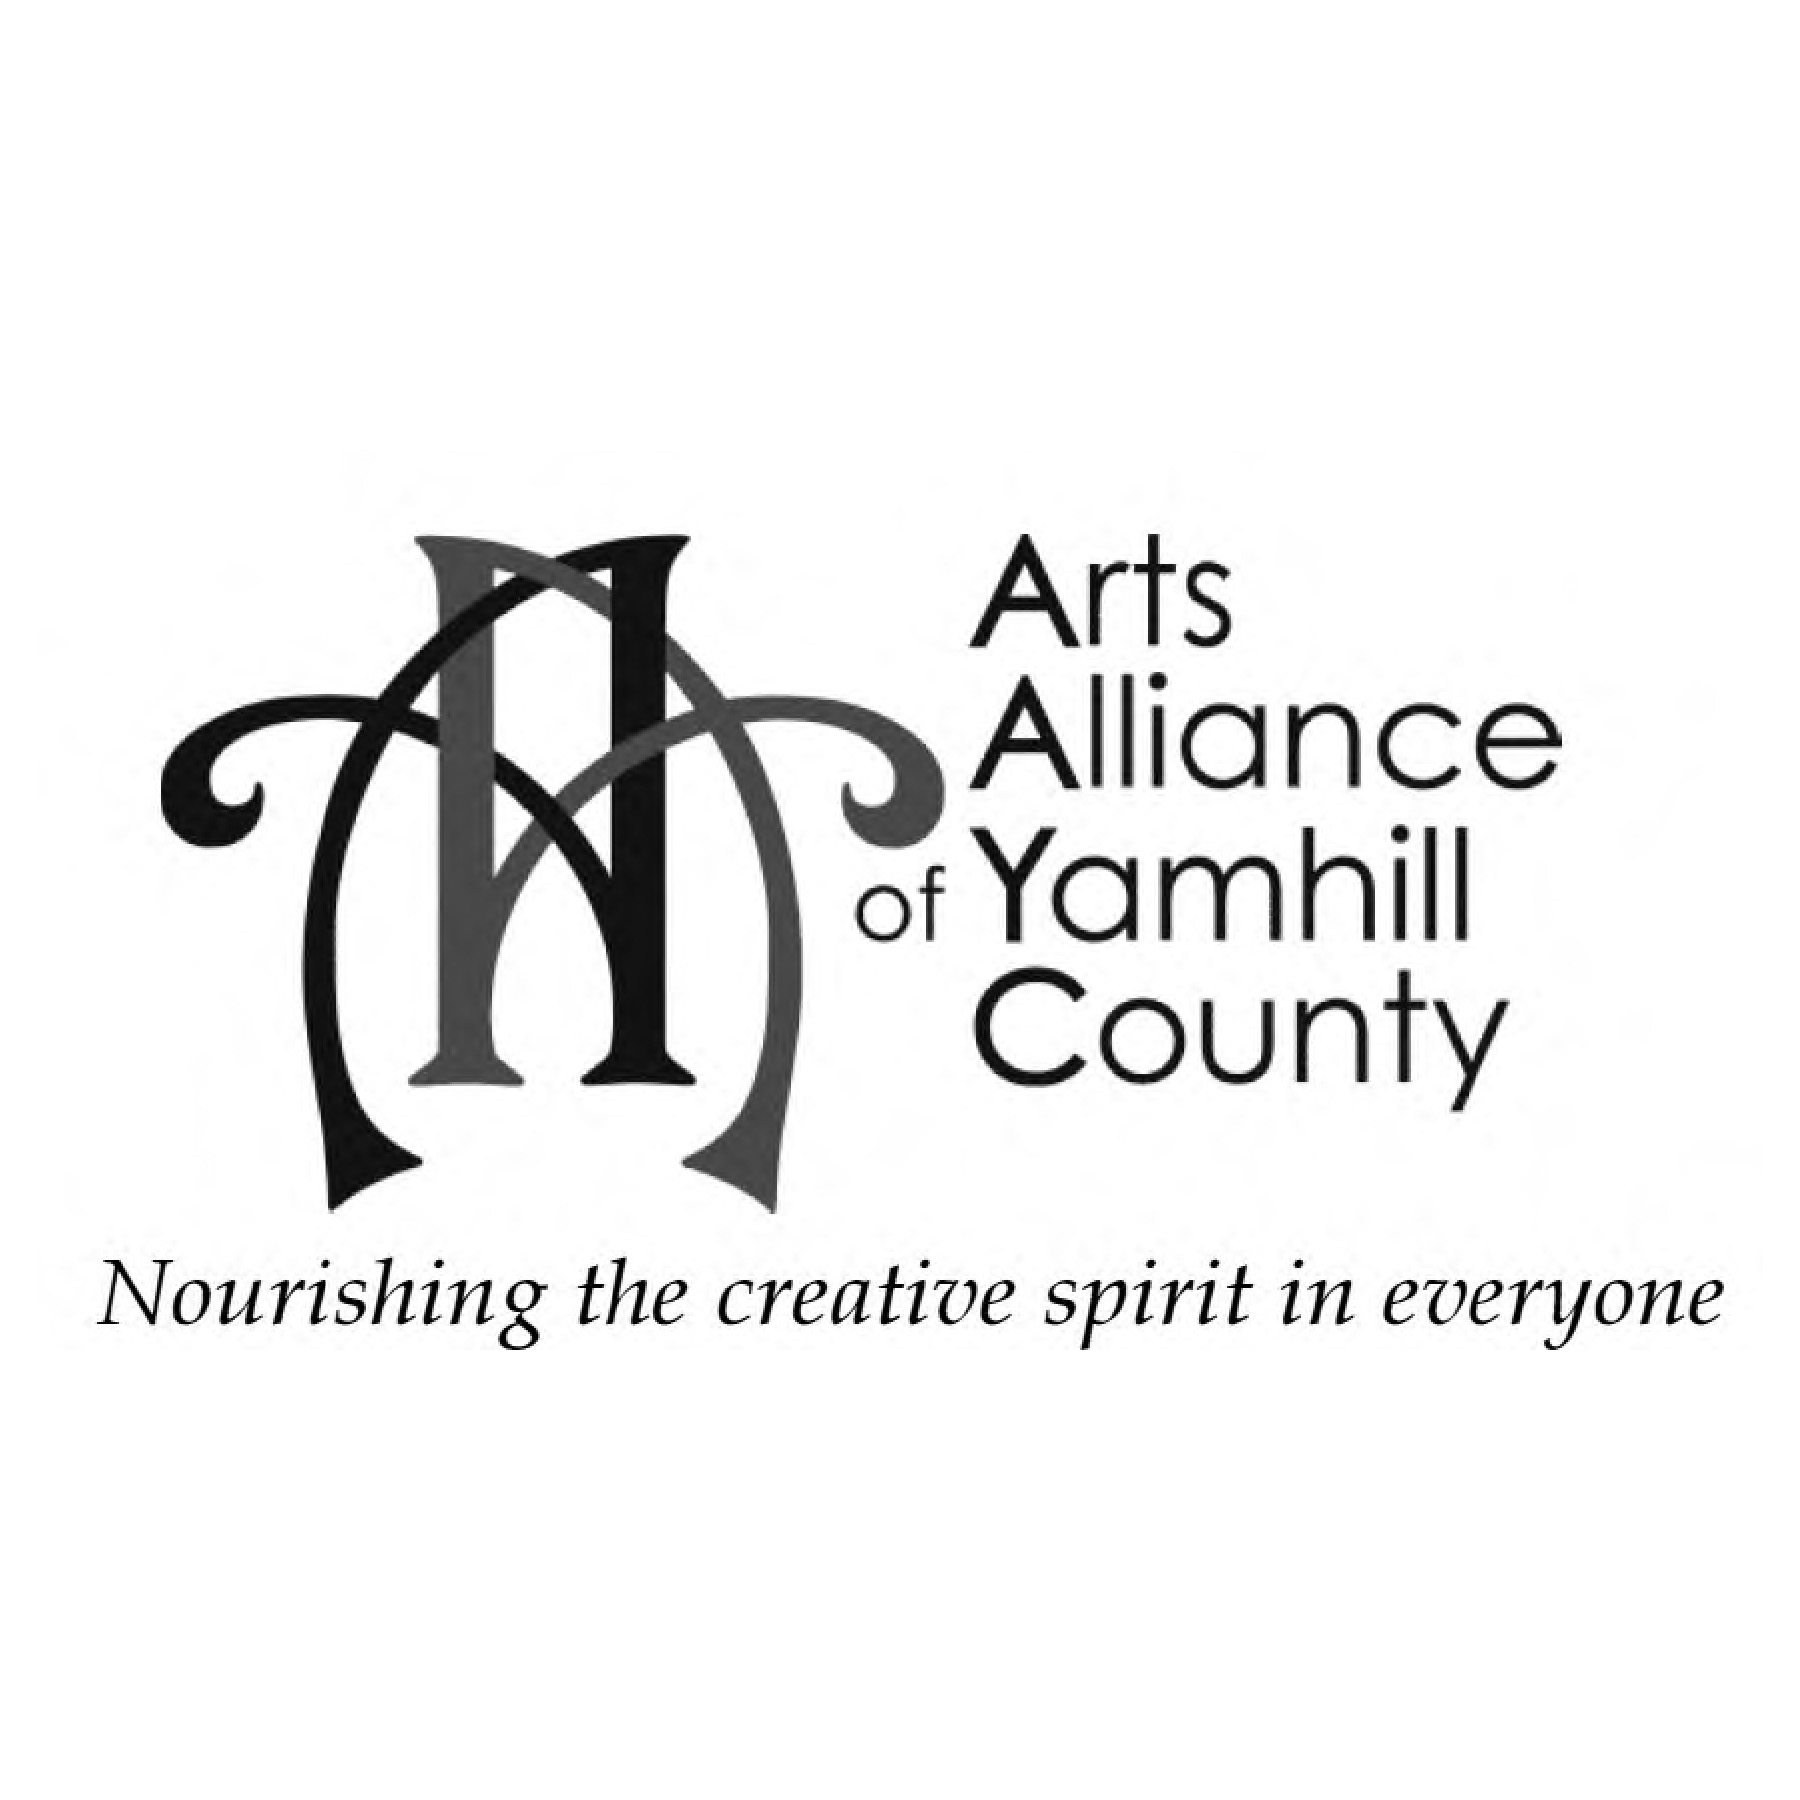 Arts Alliance of Yamhill County